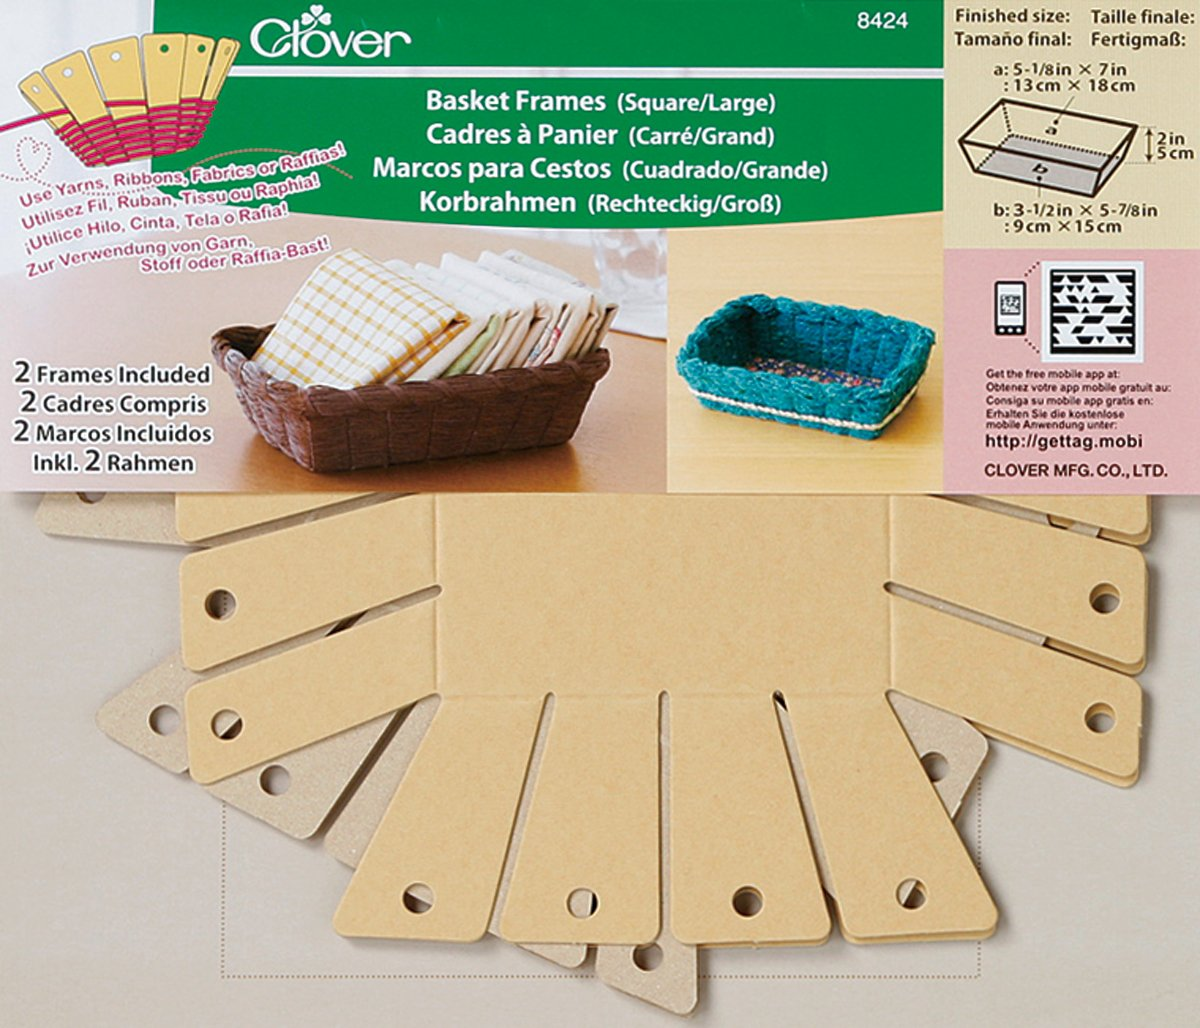 Clover 8424 2-Piece 7-Inch by 5-1/8-Inch by 2-Inch Basket Frames, Large, Square Clover Needlecraft